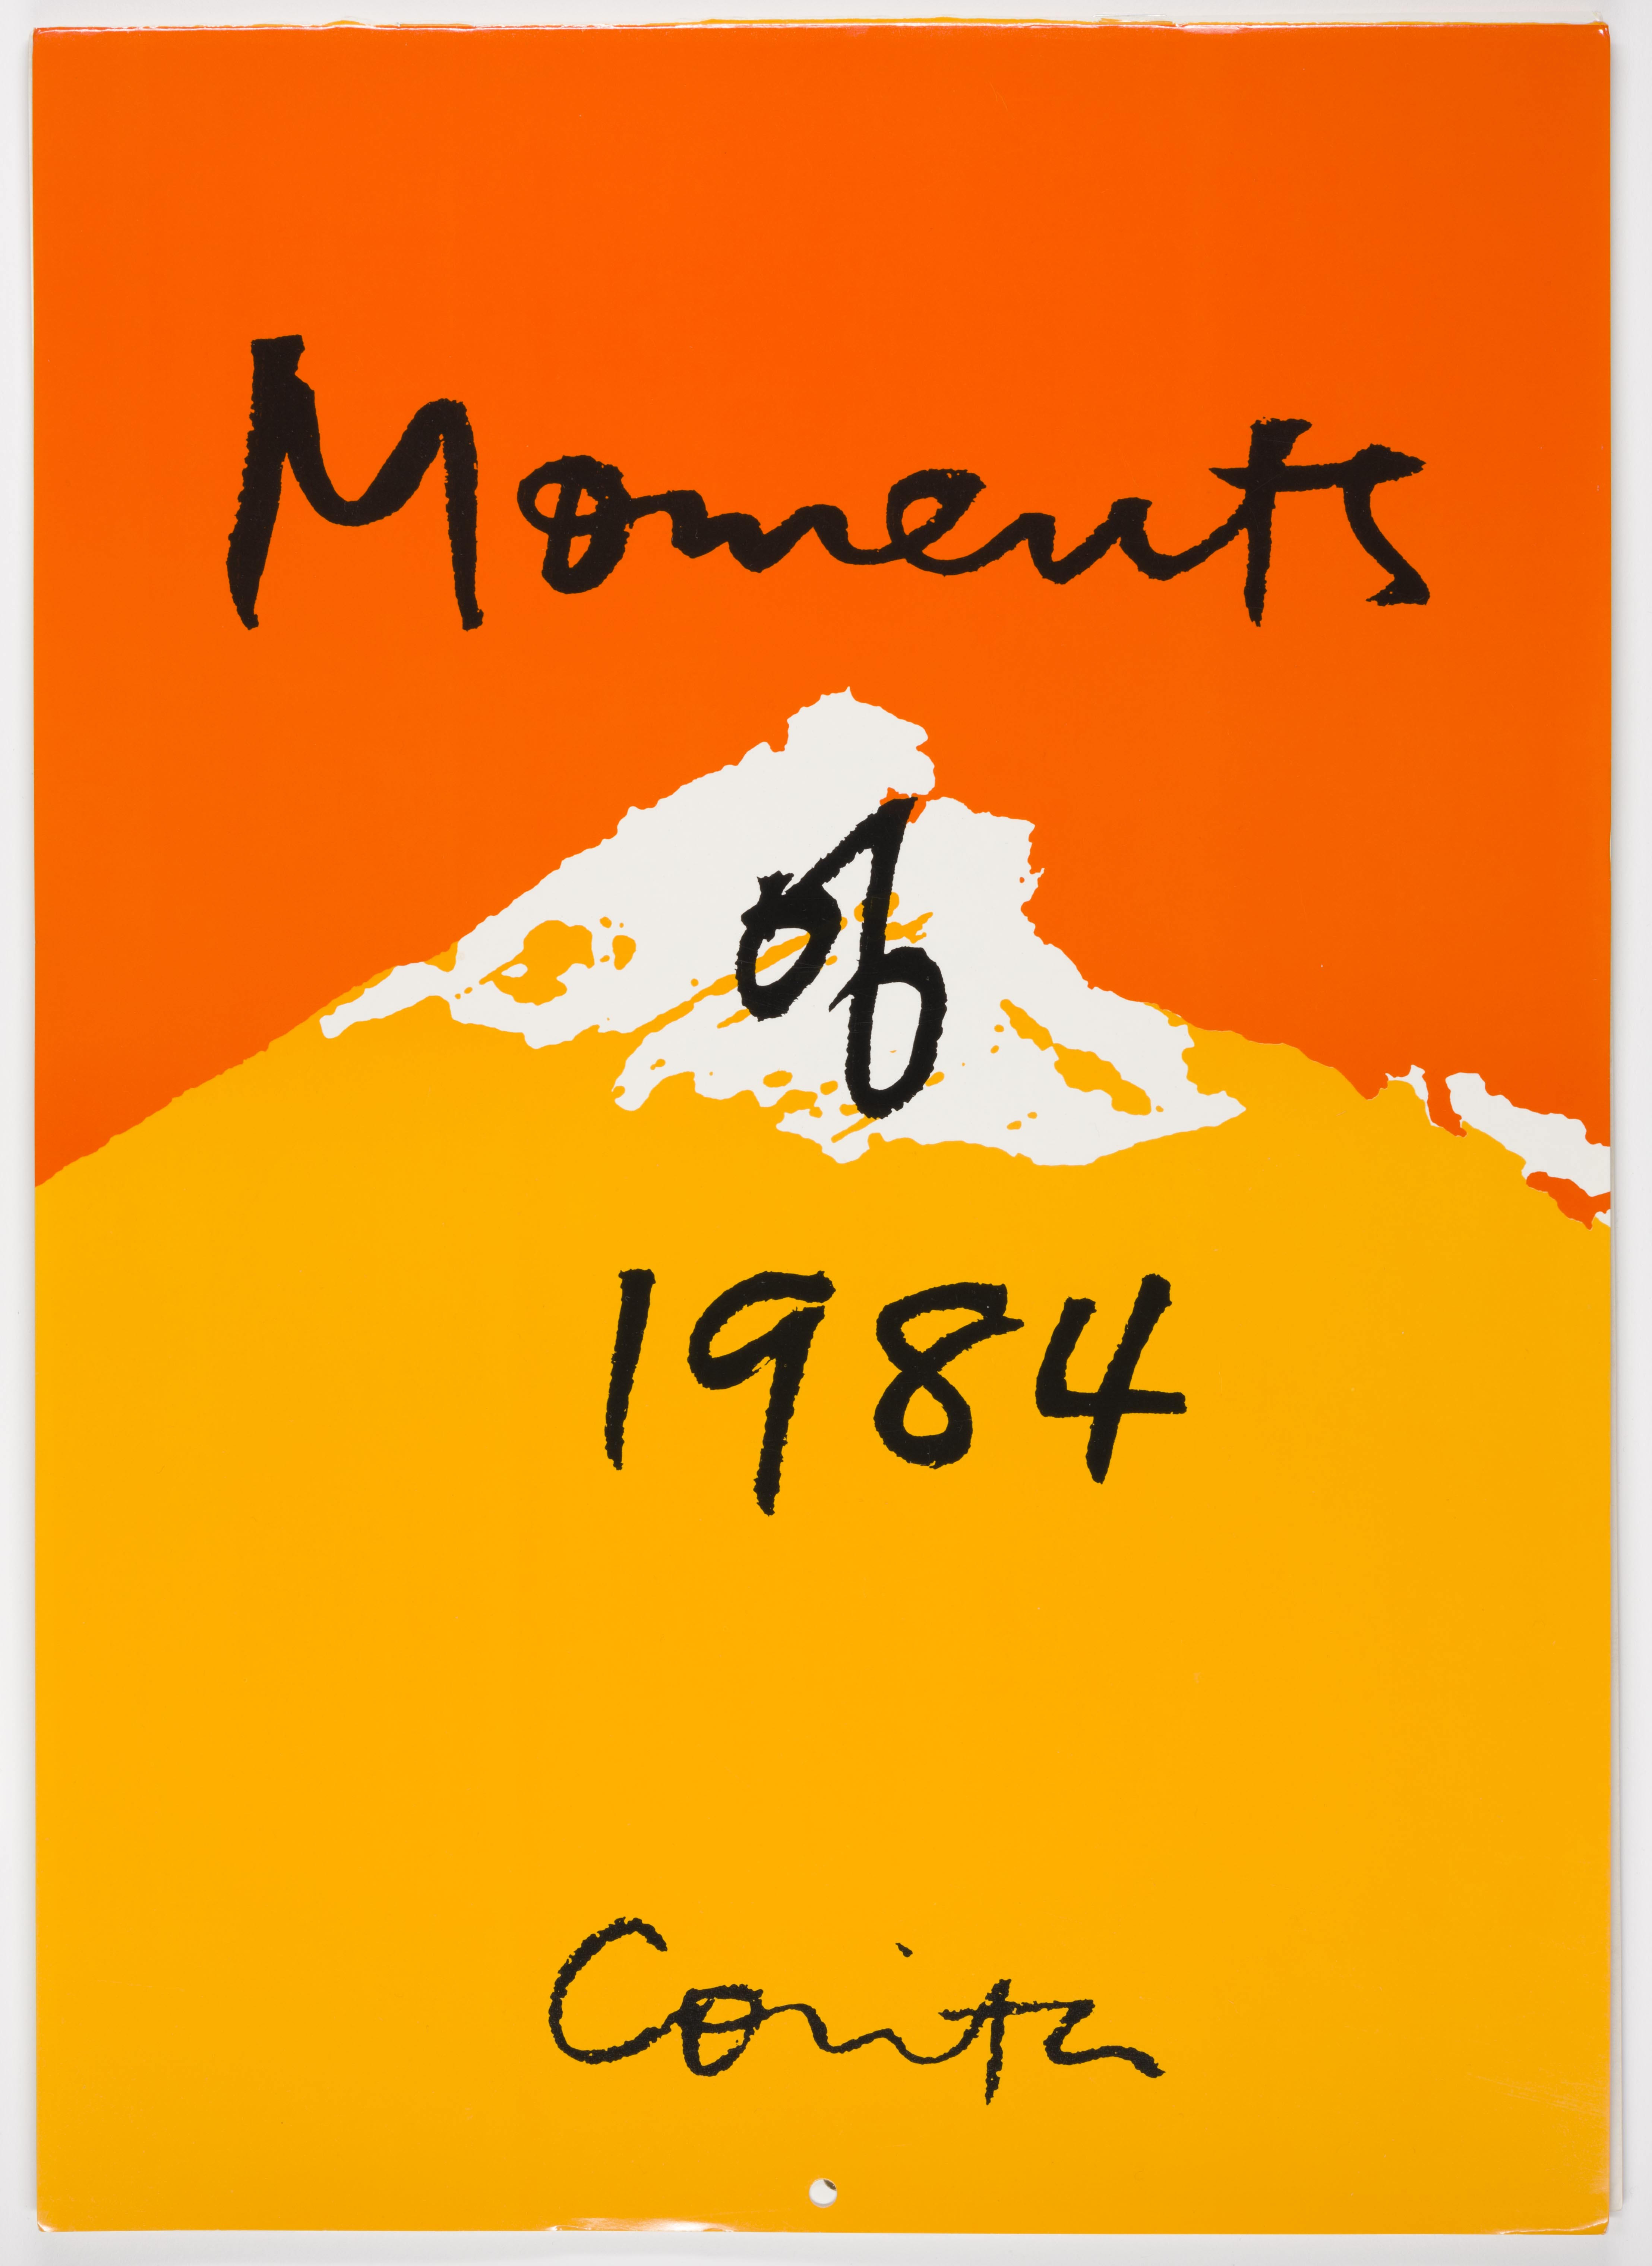 Corita Kent, Moments, 1982